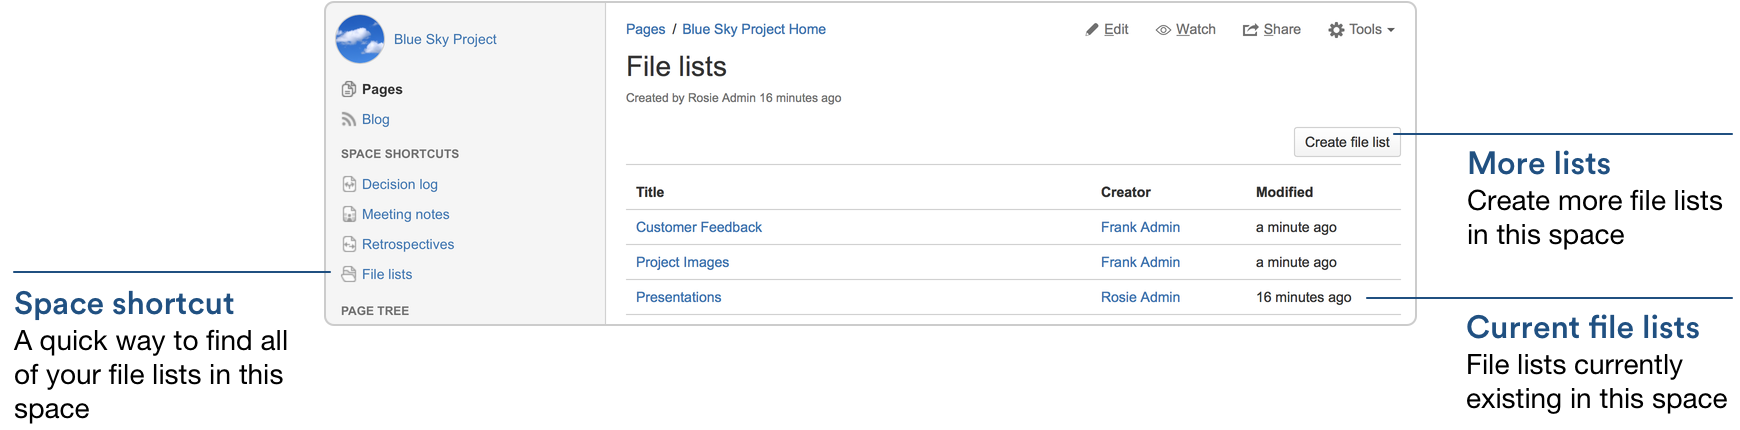 File list blueprint atlassian documentation screenshot a file list page customising this blueprint malvernweather Gallery